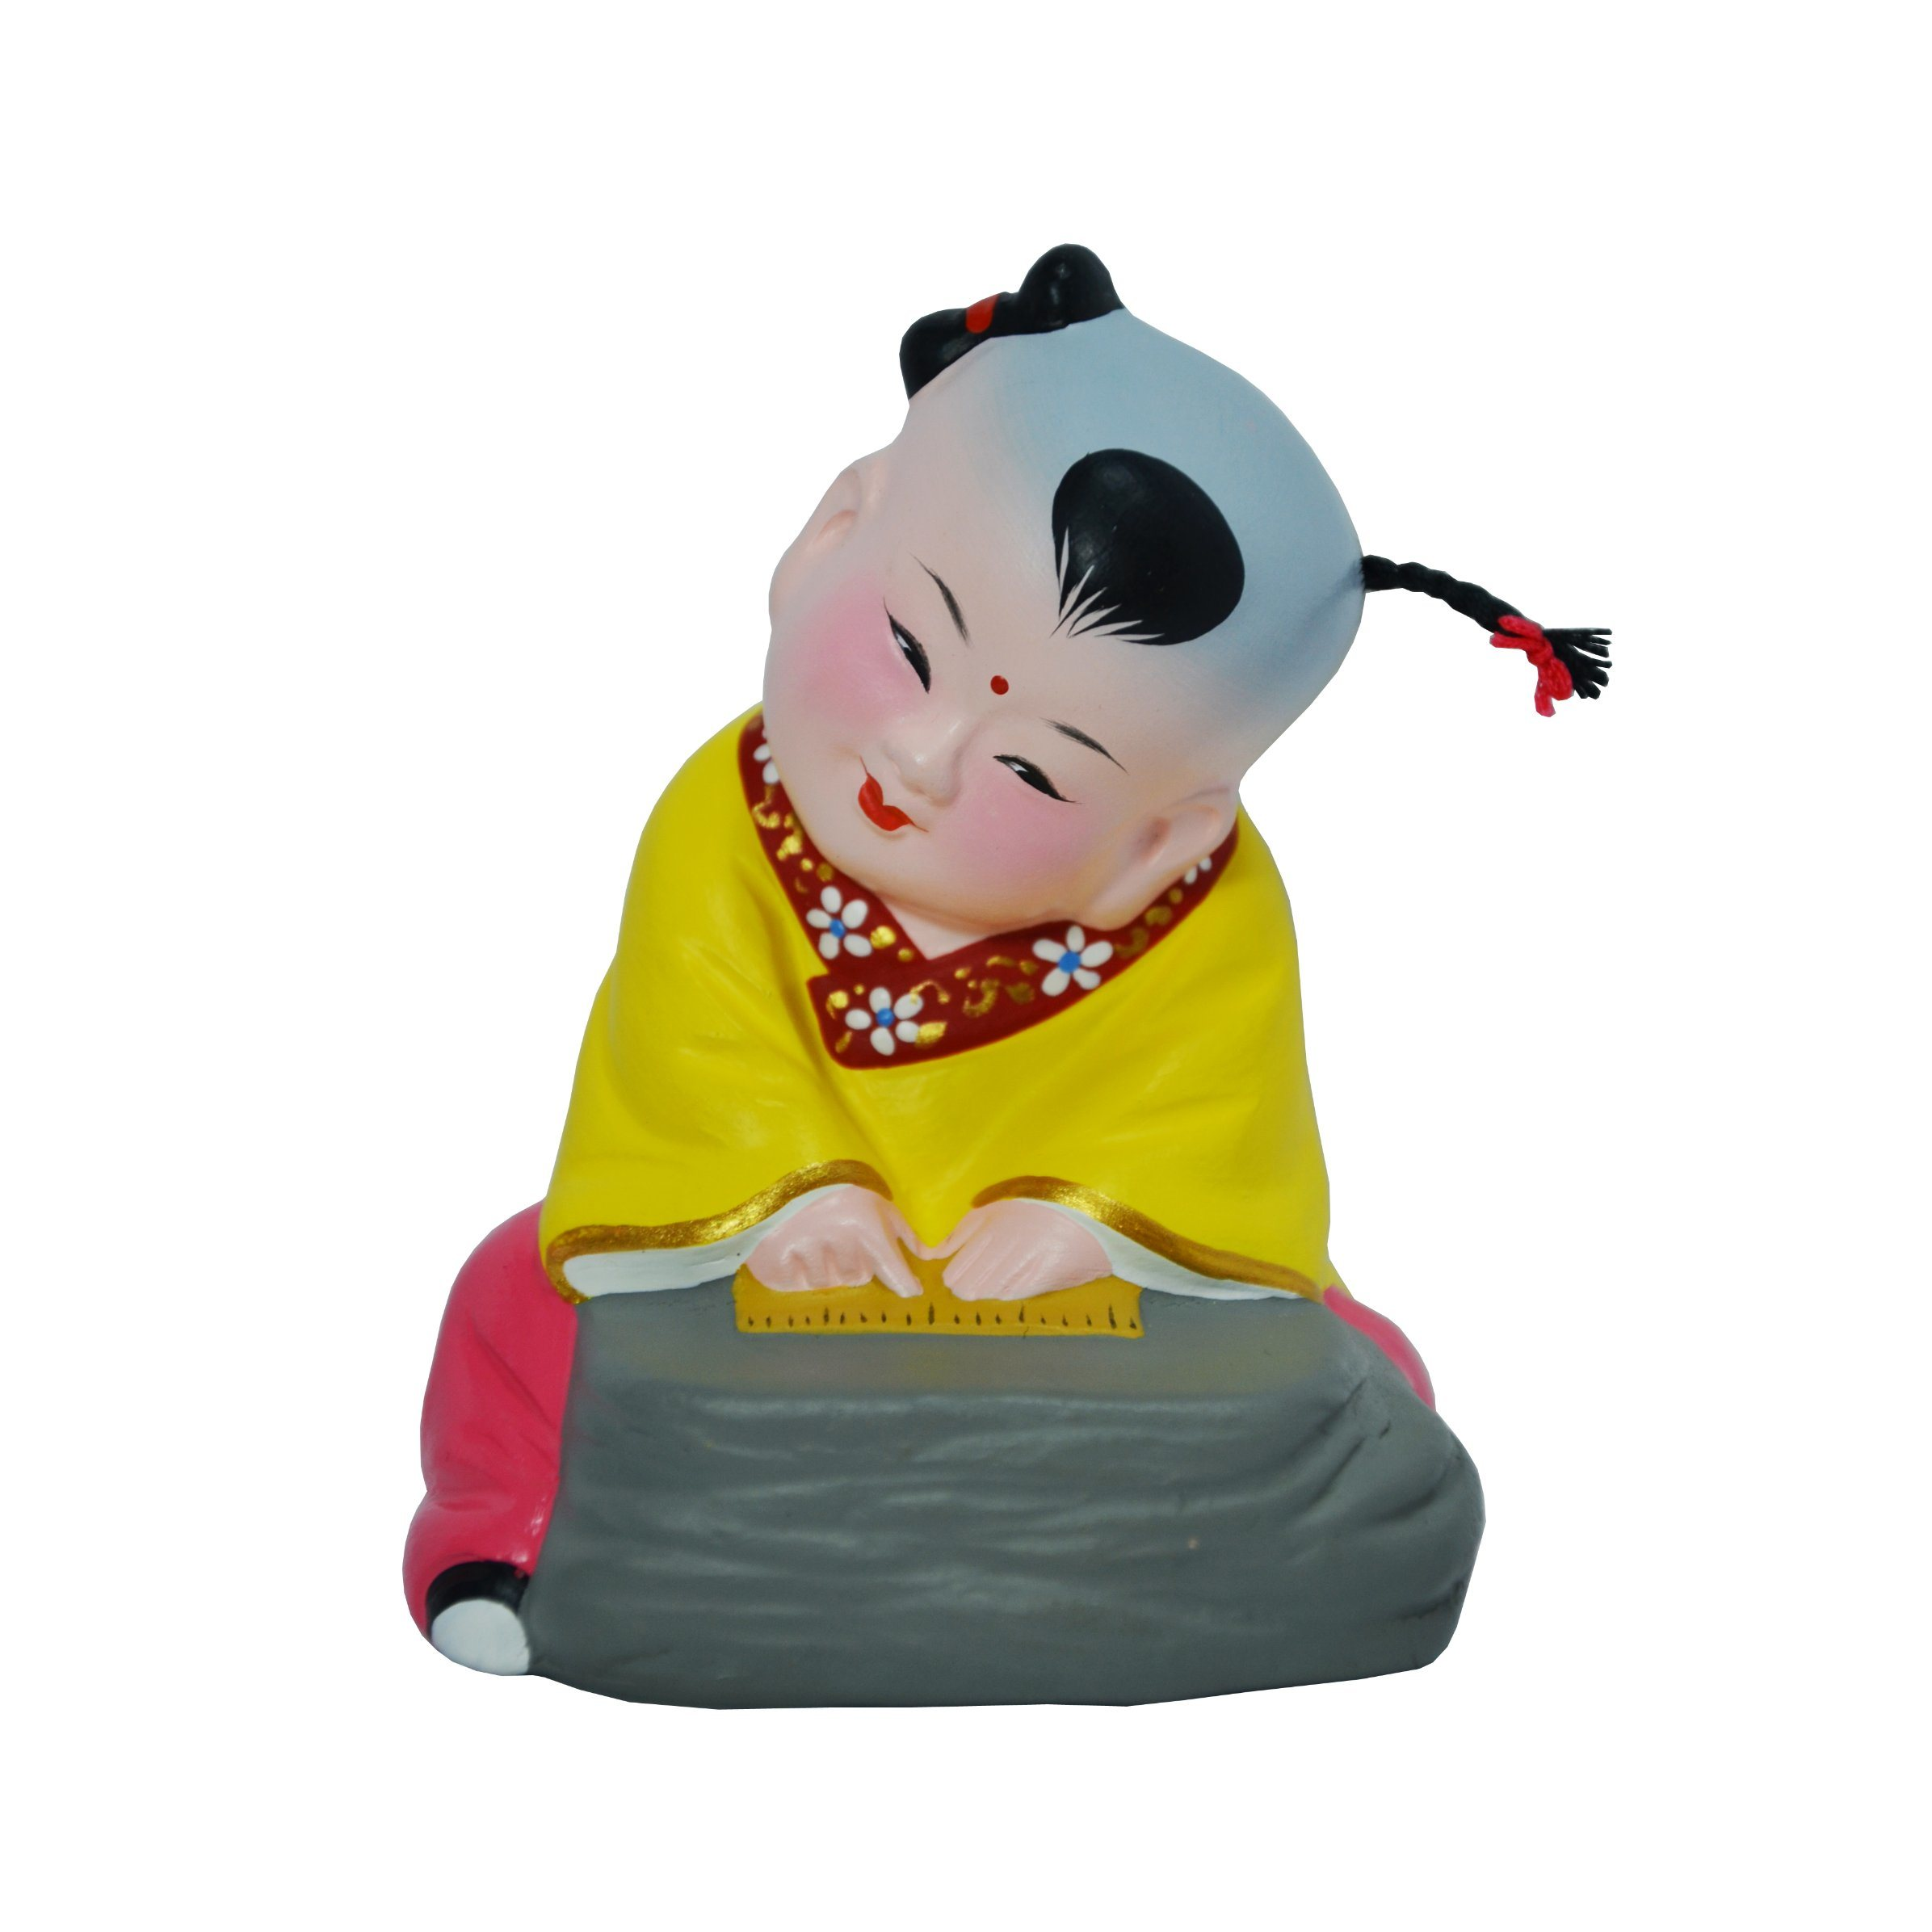 Handicraft Clay of Chinese Traditional Figure